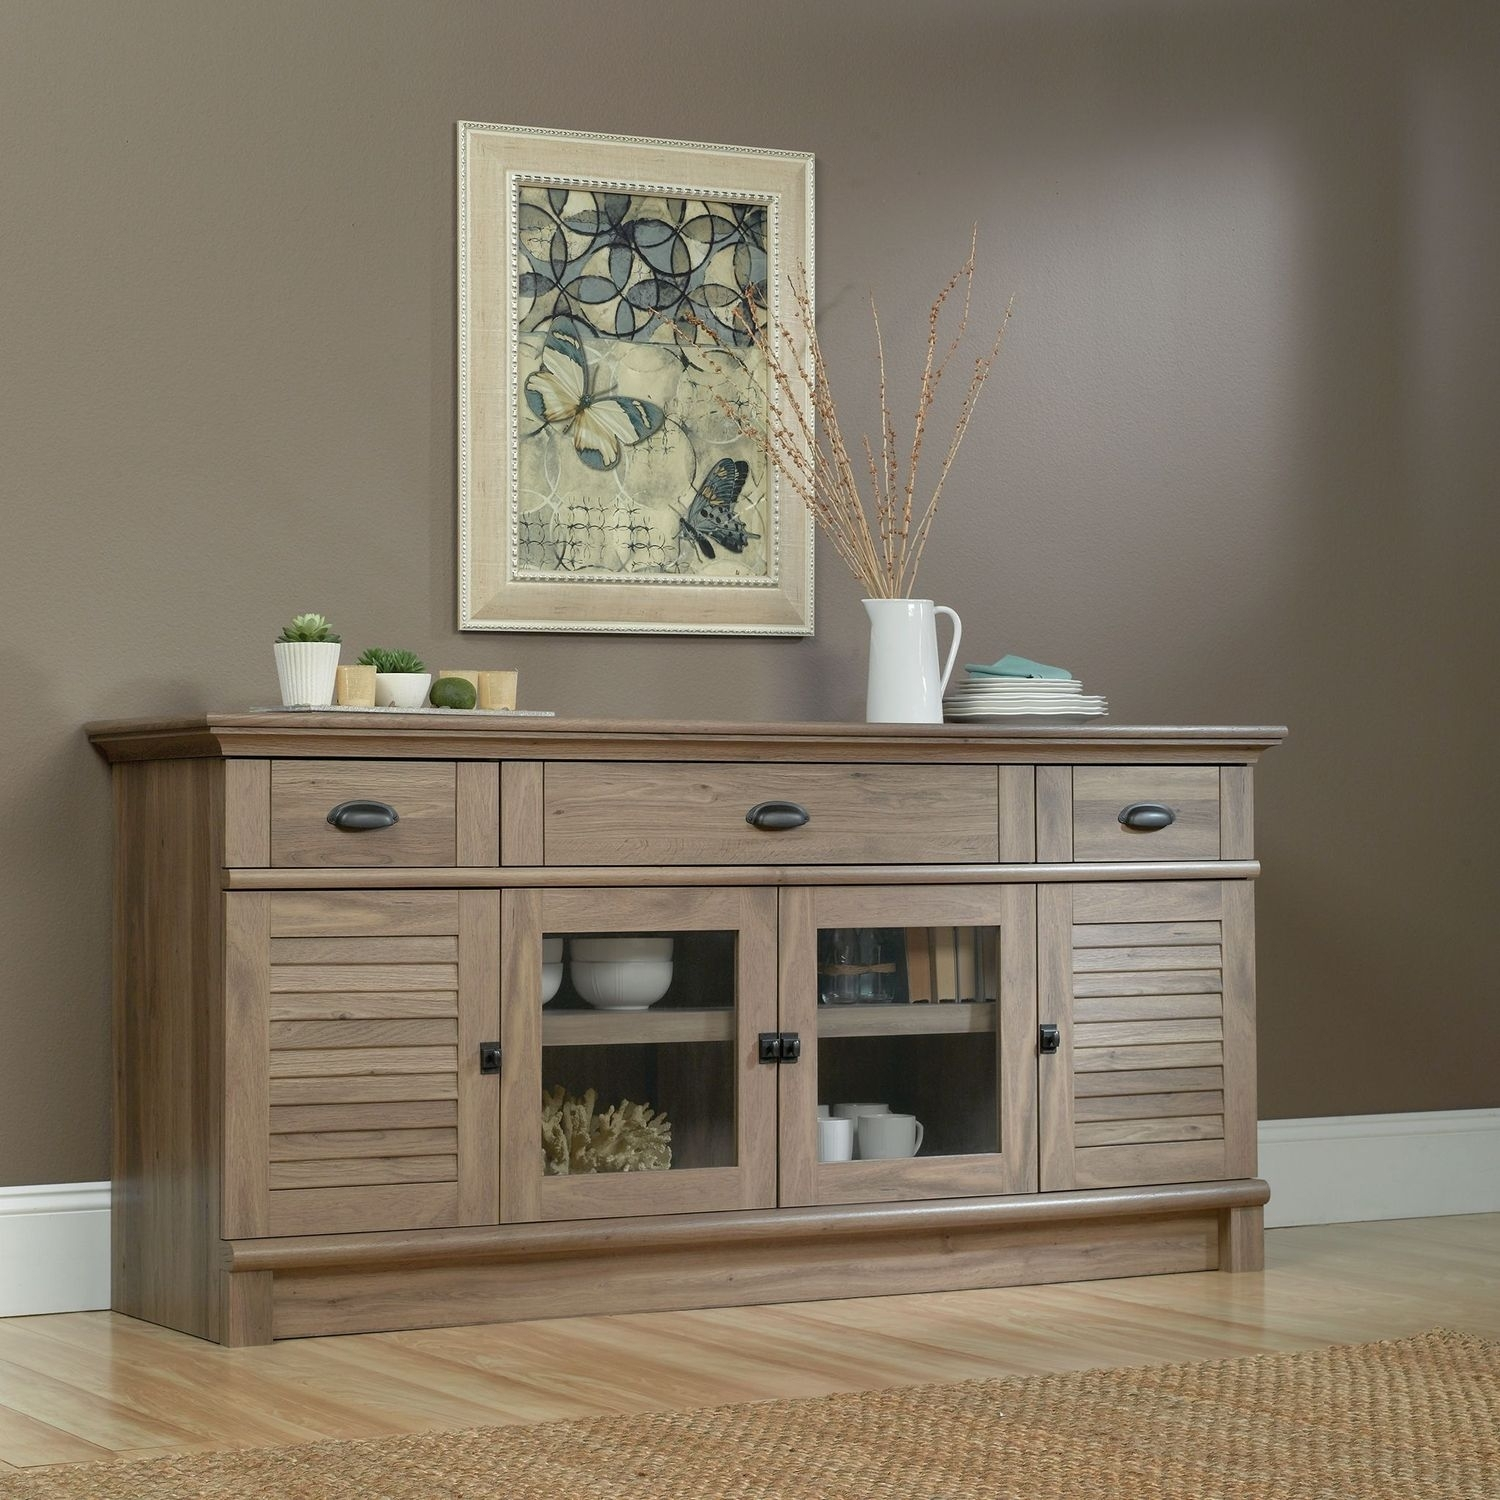 Tv Stands & Media Centers | Levin Furniture within Mid Burnt Oak 71 Inch Sideboards (Image 27 of 30)